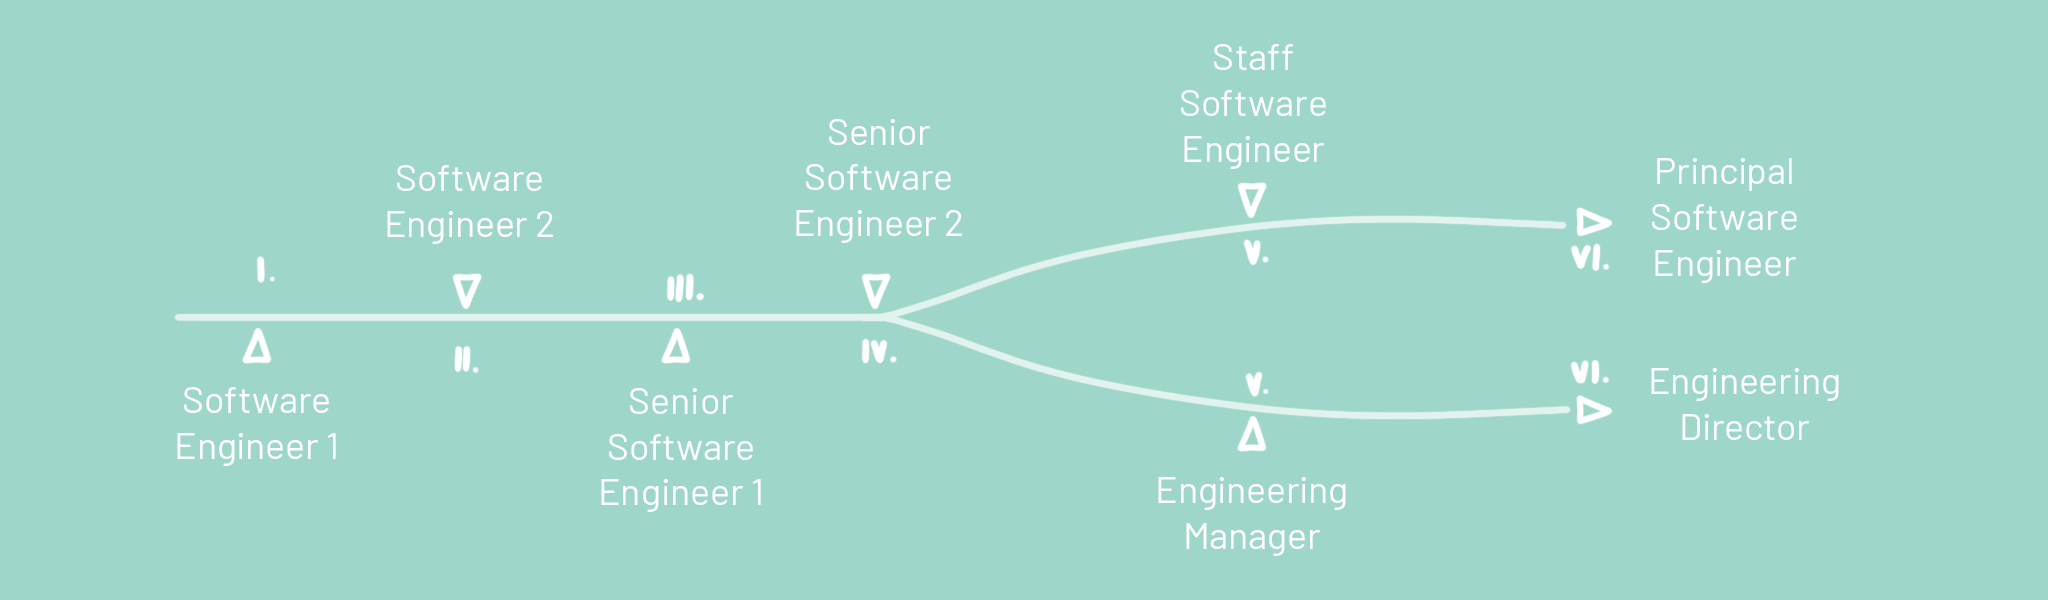 Softwa Engineer Career Ladder Zenput